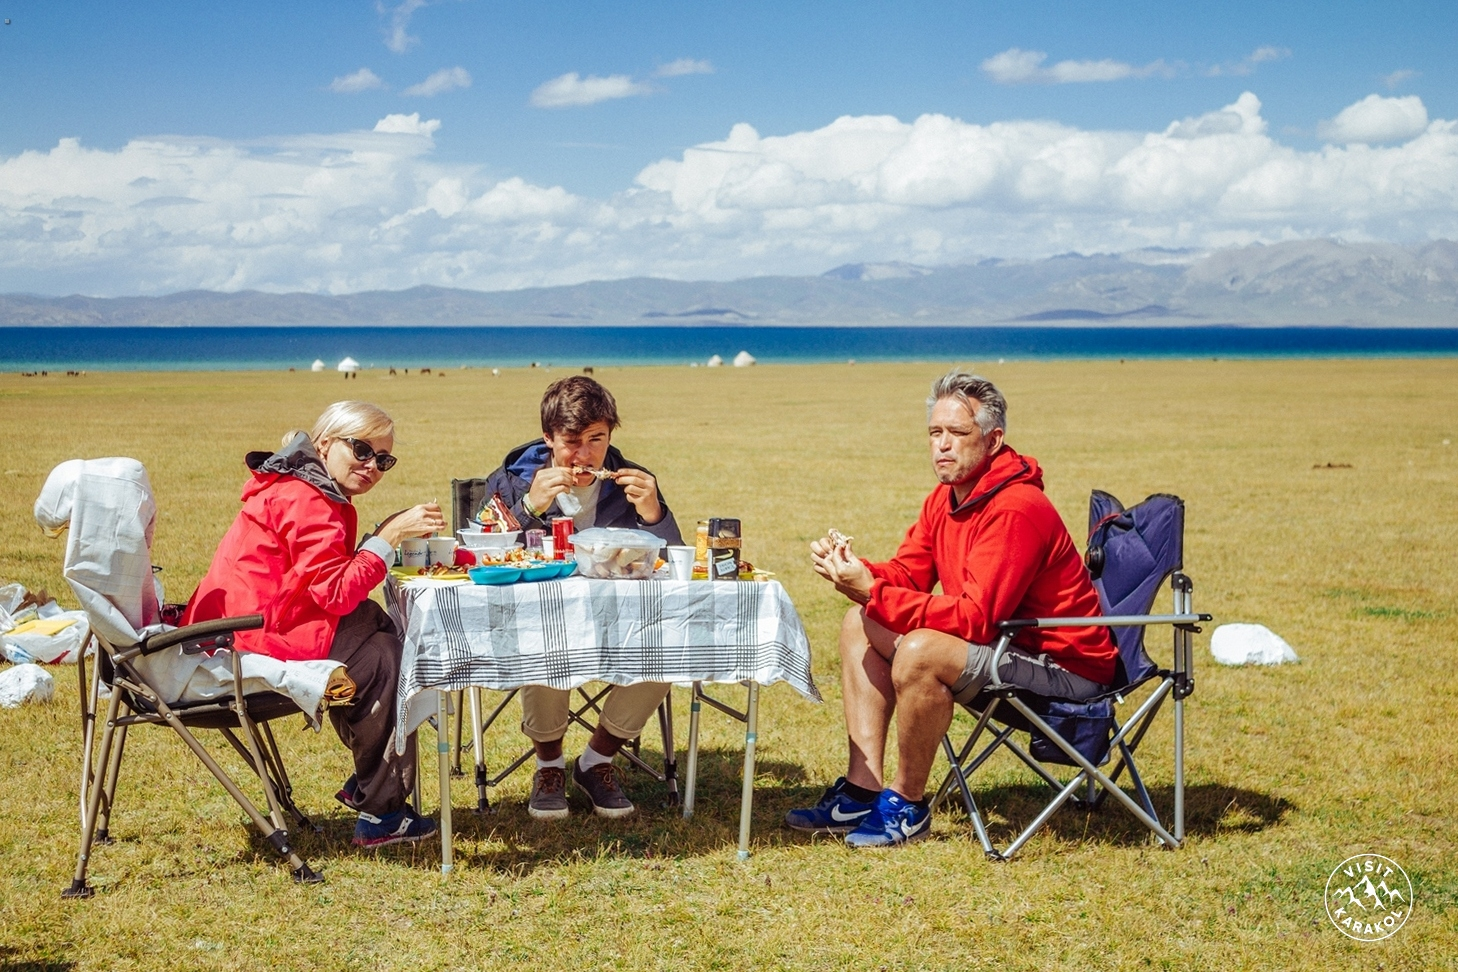 Lunch on Son-Kul lake